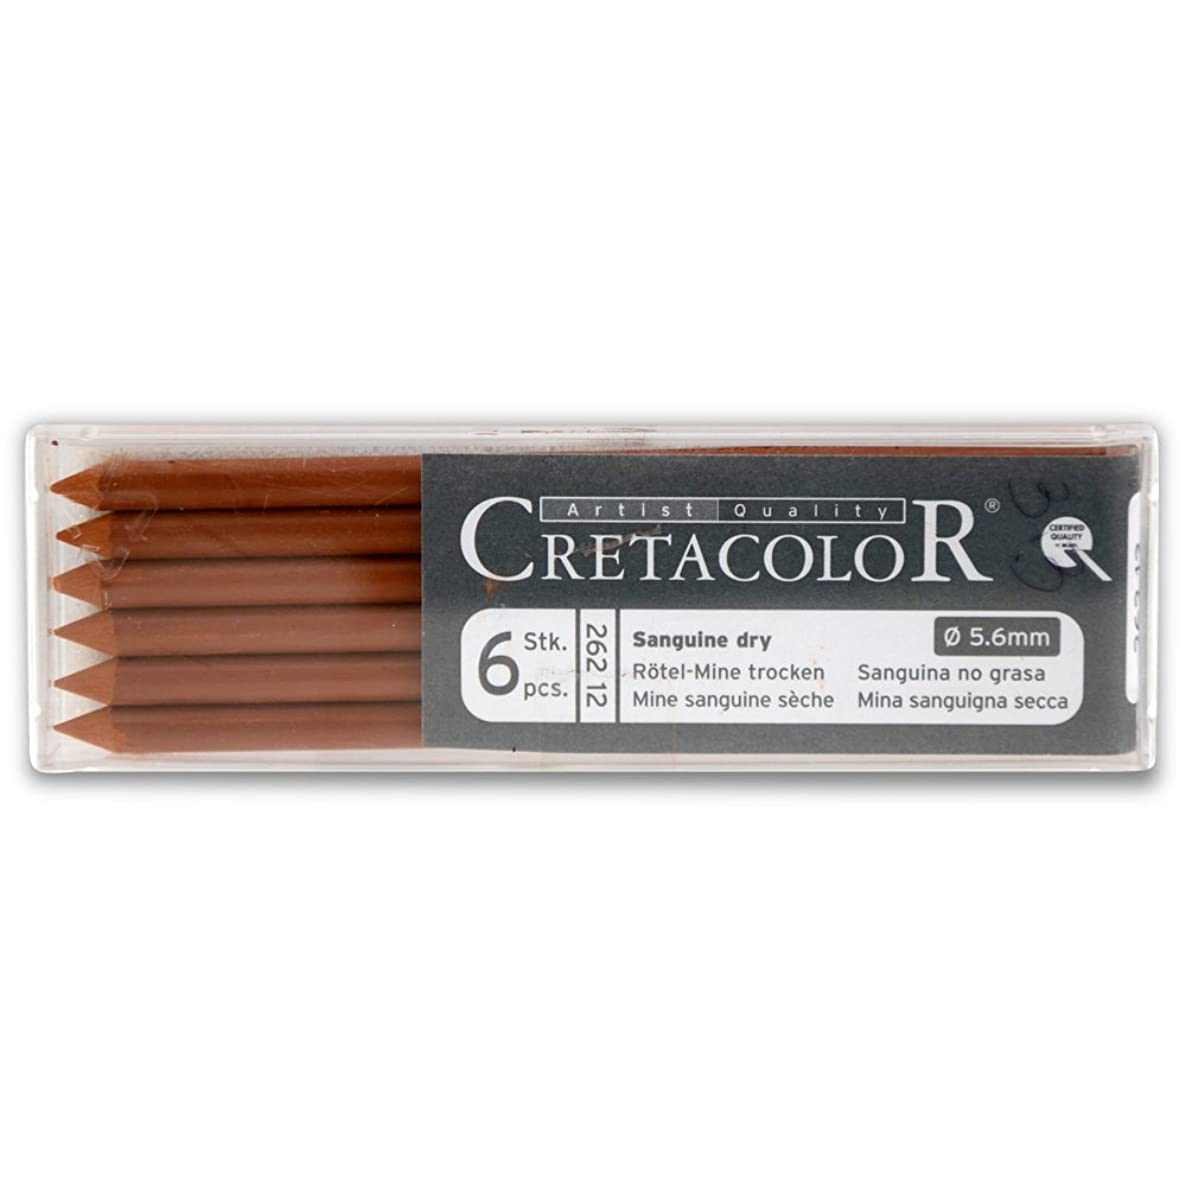 Cretacolor Artist Lead Sanguine Dry 6/Pack